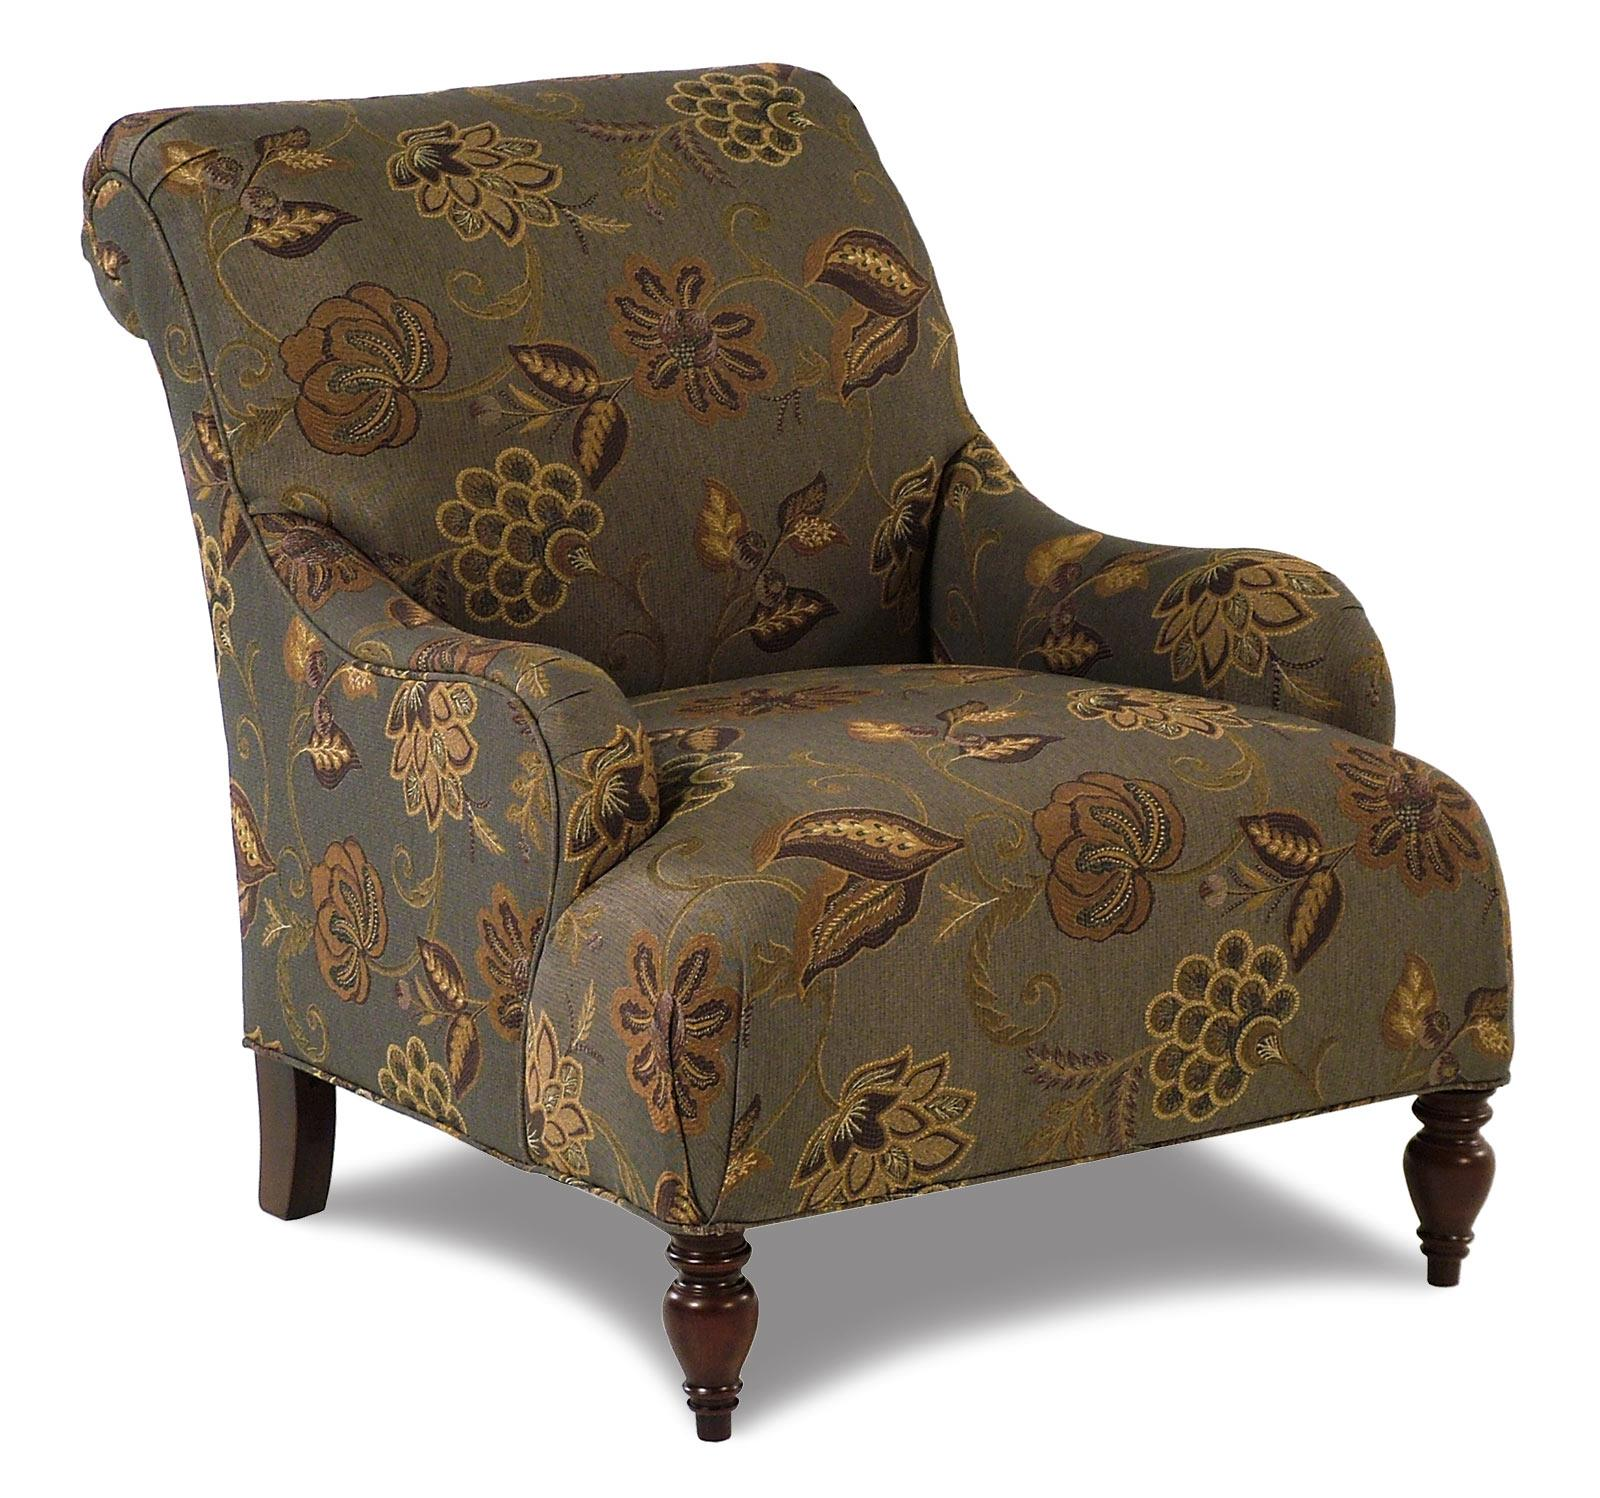 Broyhill Furniture Isla Accent Chair - Item Number: 9045-0